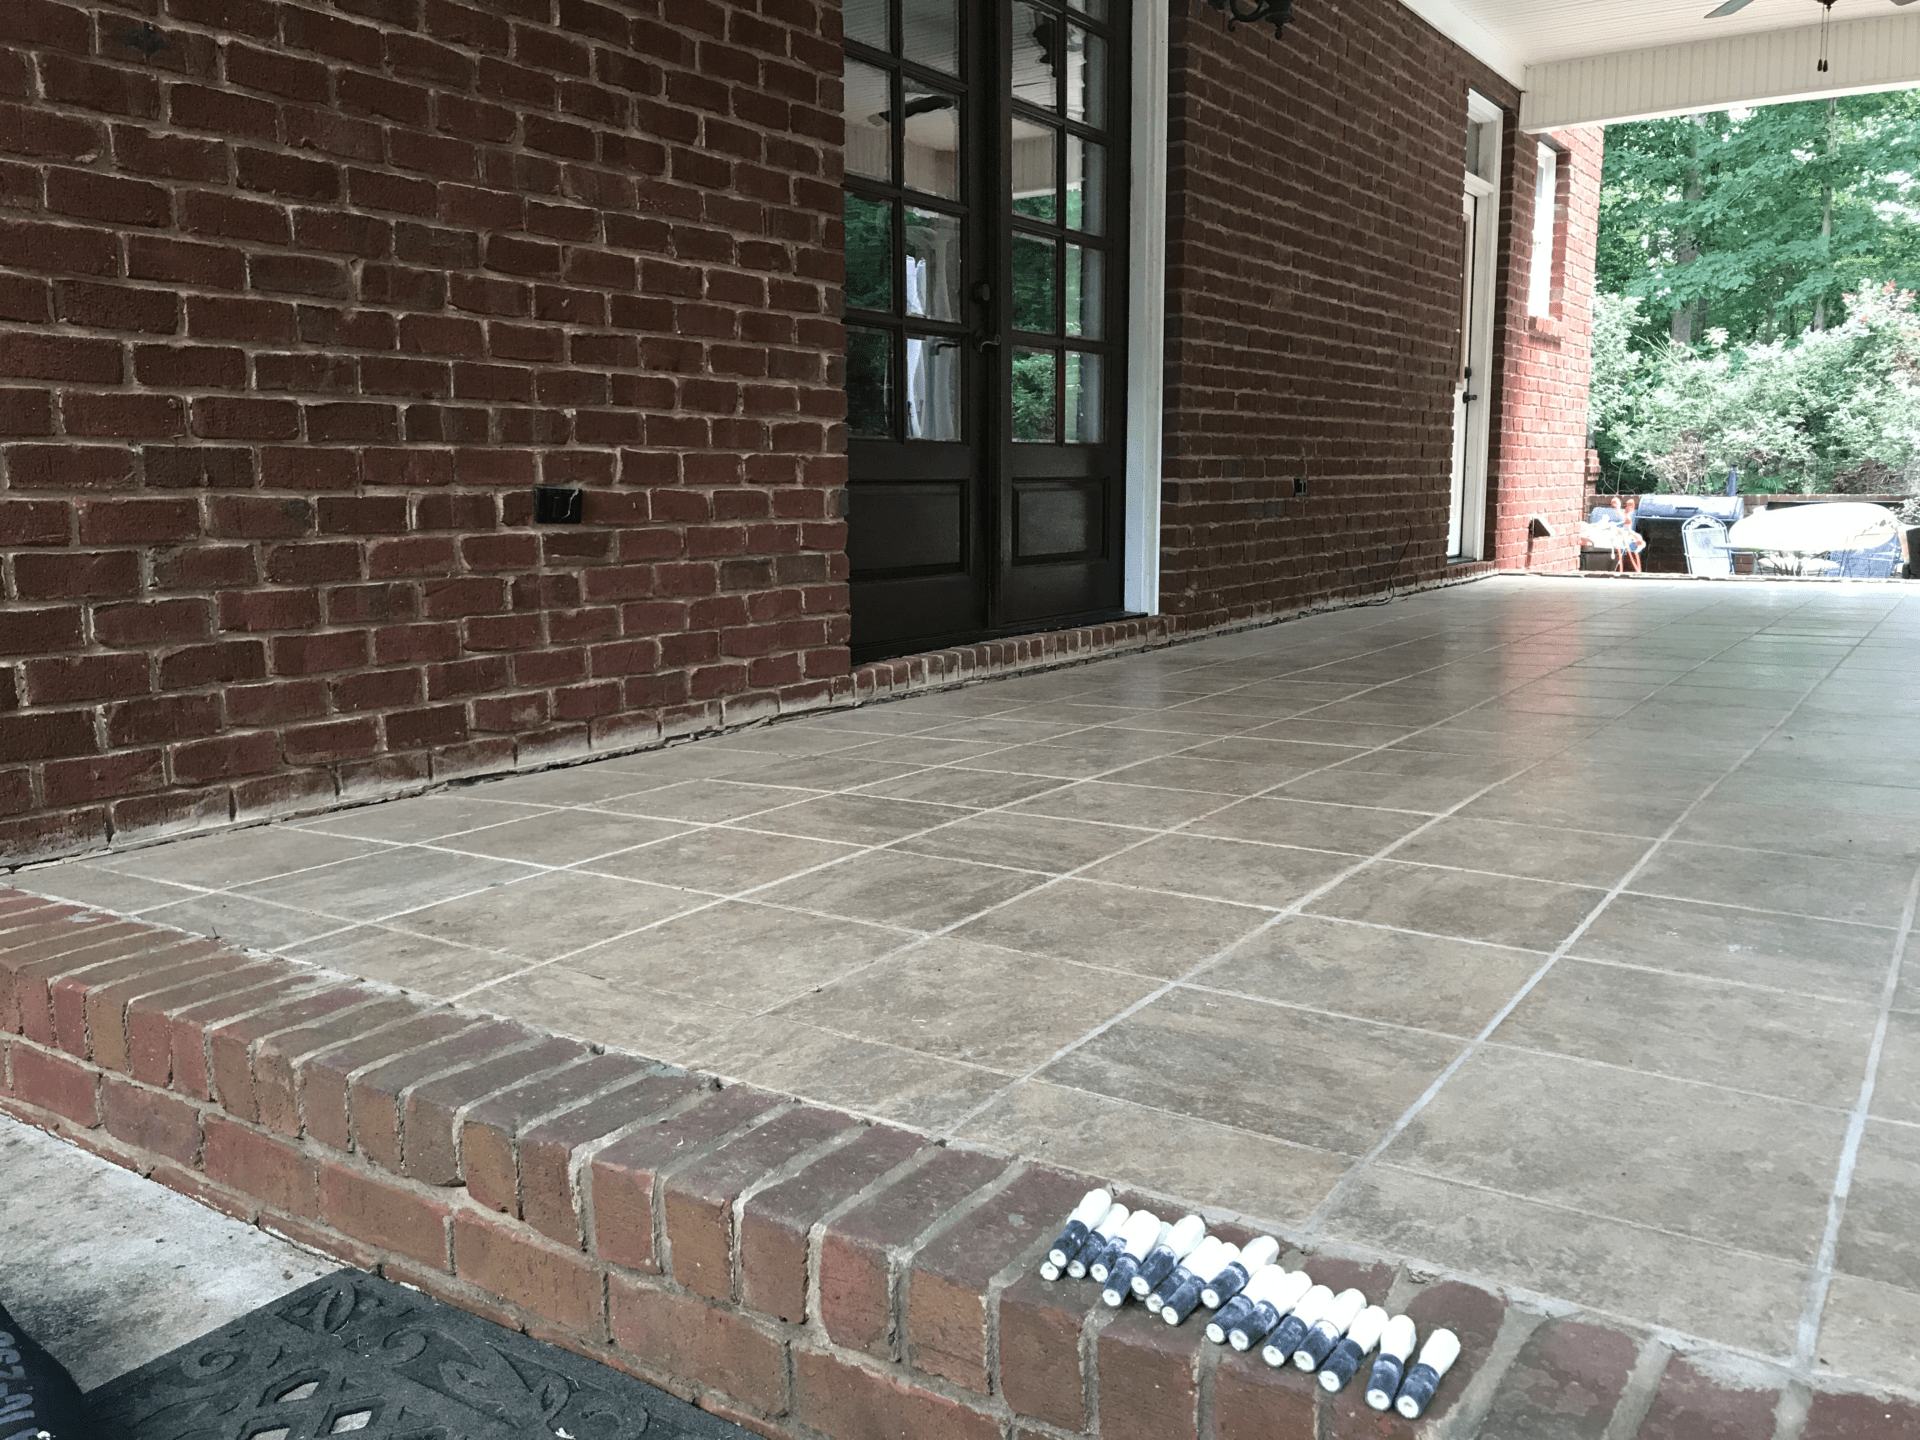 Sinking concrete patio with tile and brick -  before